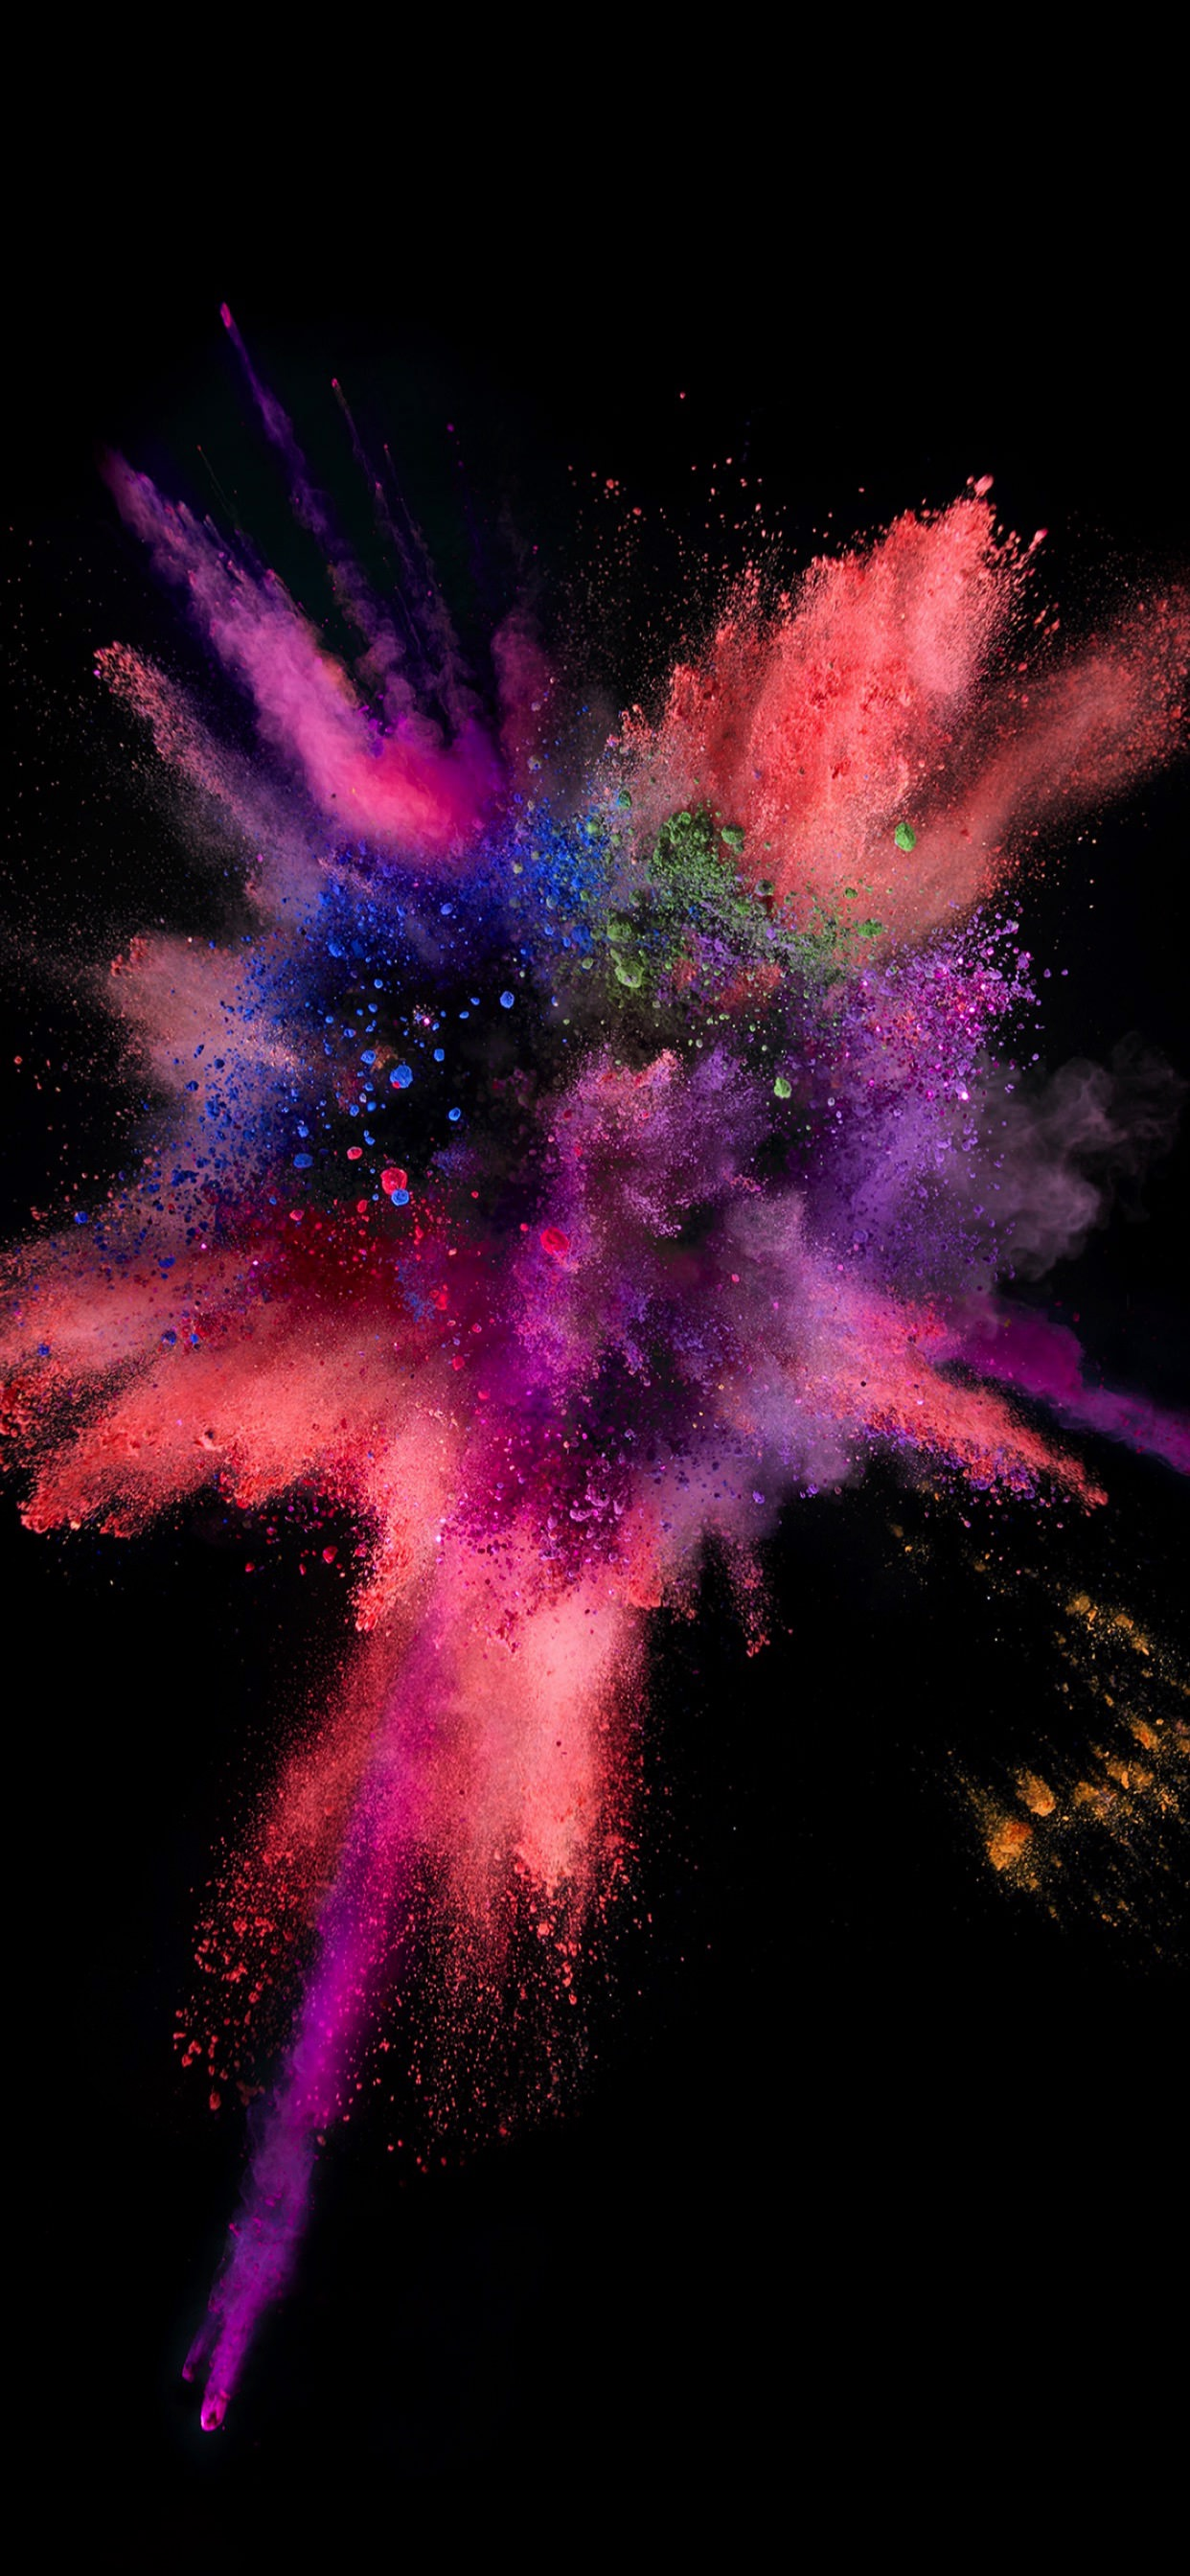 iPhone XS Max / XS / XR Wallpaper 0479